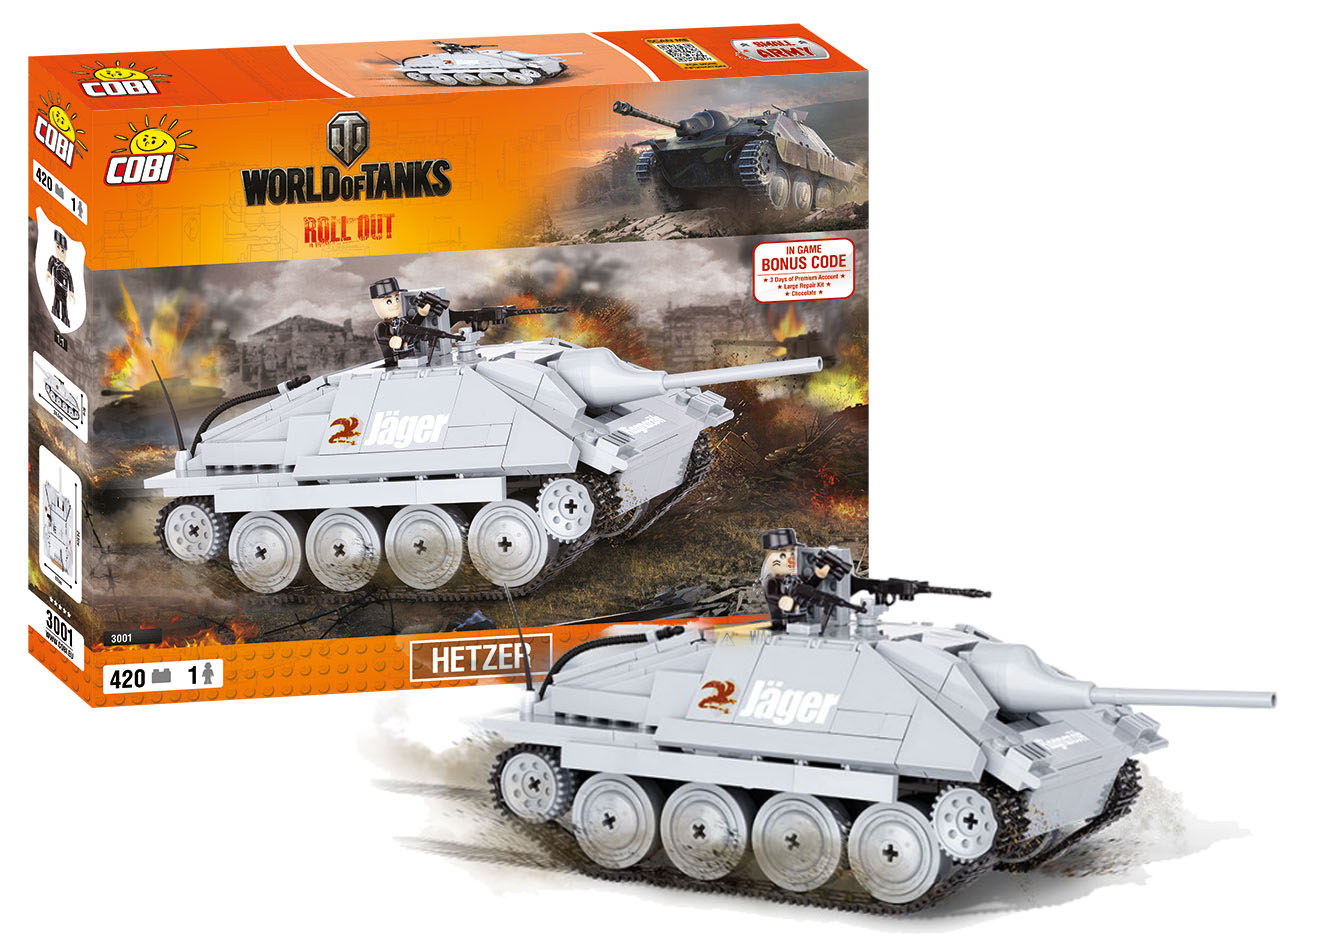 COBI stavebnice World of Tanks Hetzer 410 k, 1 f